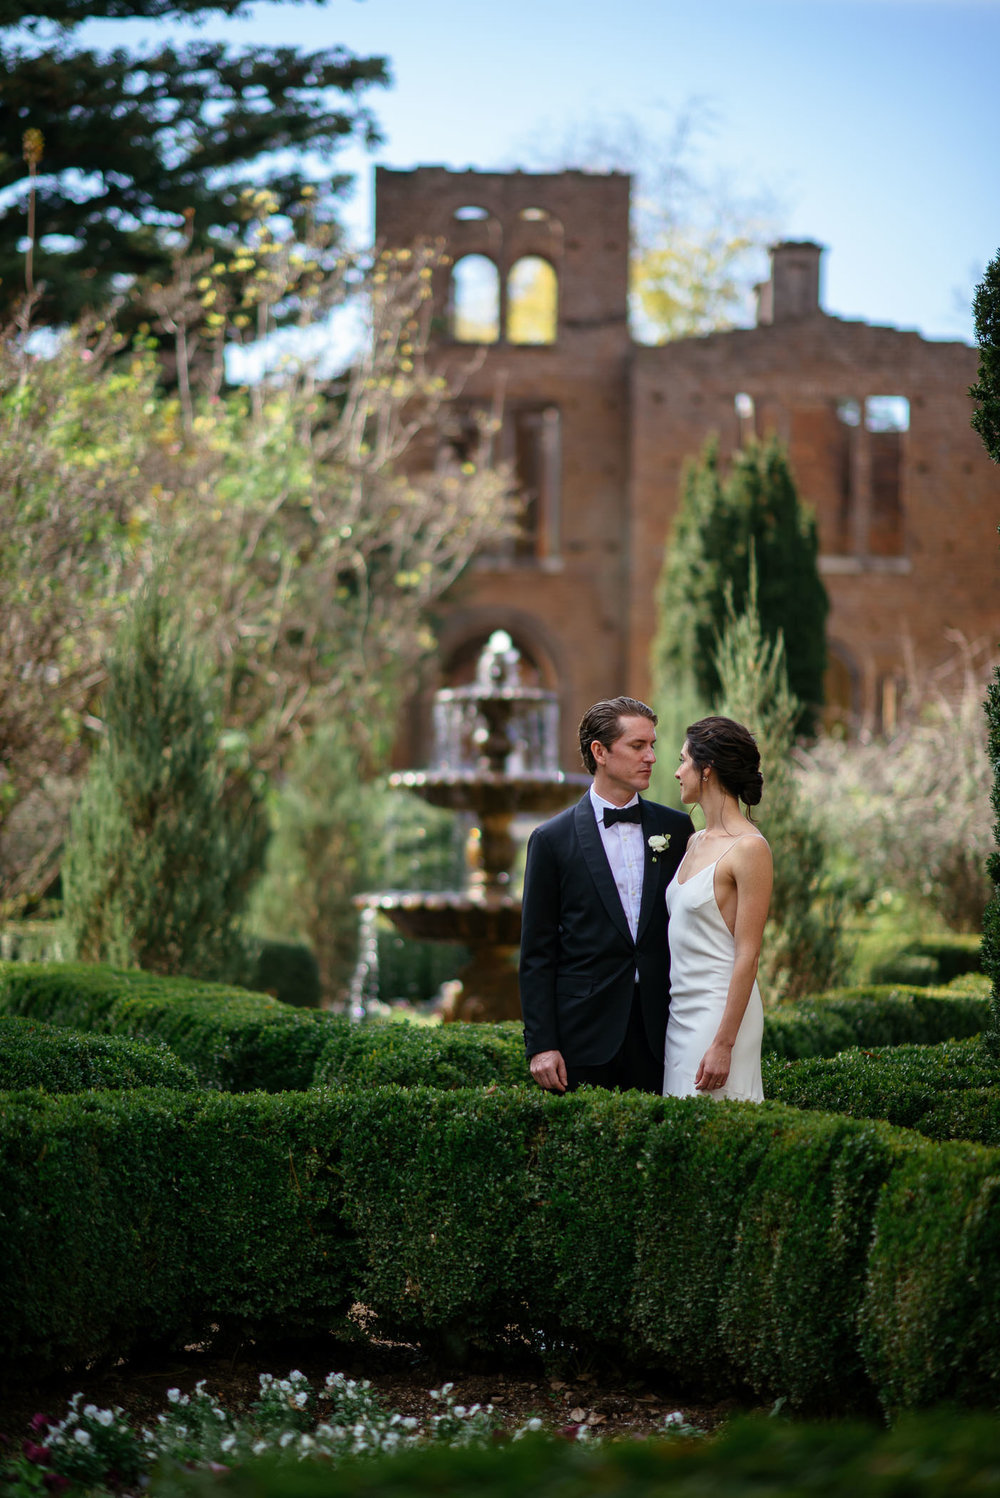 Autumn+Barnsley+Gardens+Wedding+Atlanta+Georgia_122.jpg